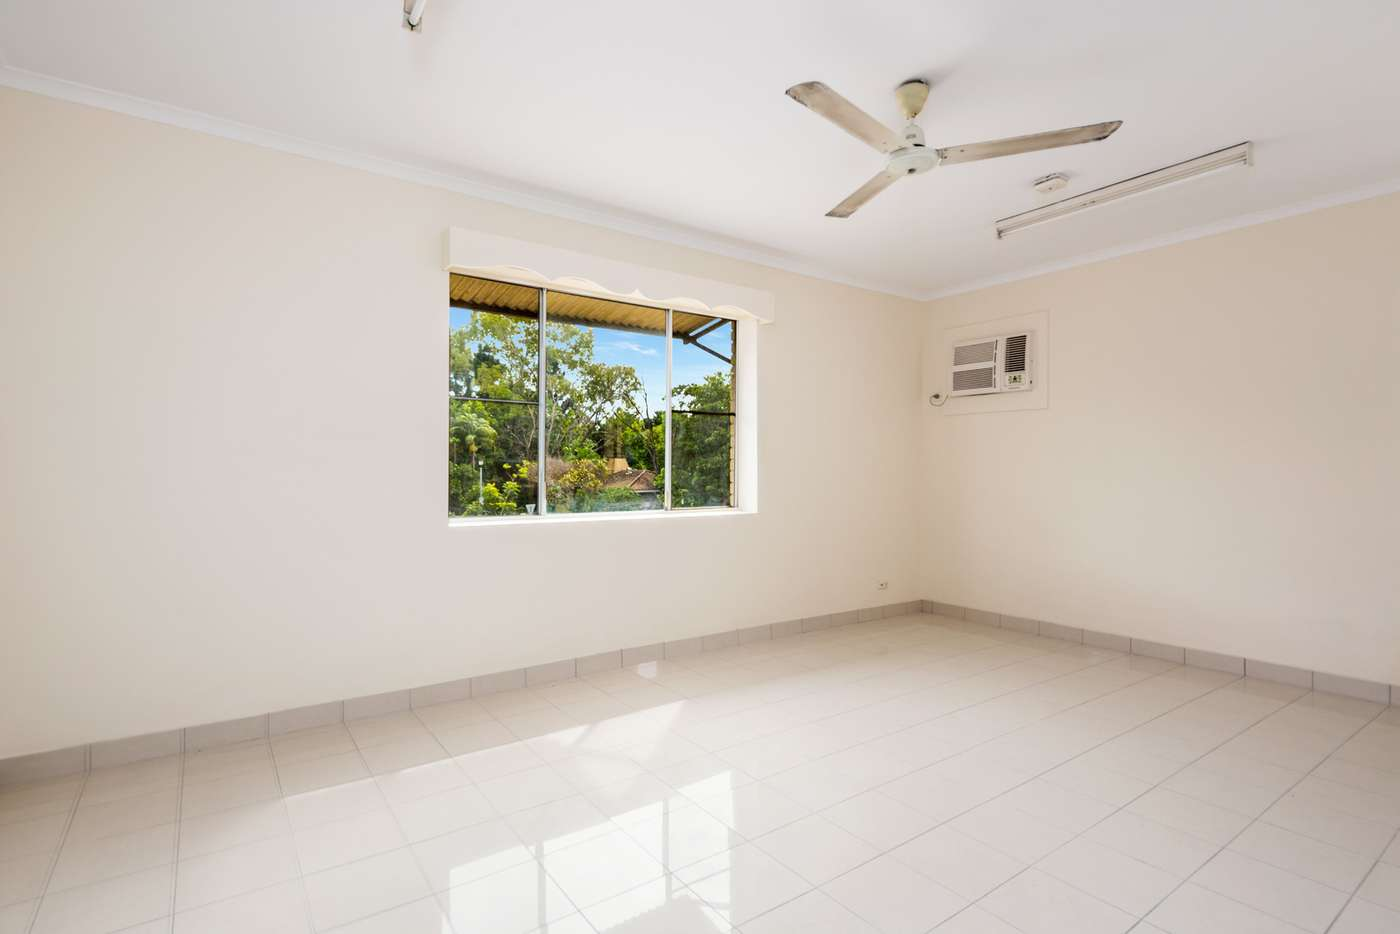 Sixth view of Homely unit listing, 5/16 Sabine Road, Millner NT 810